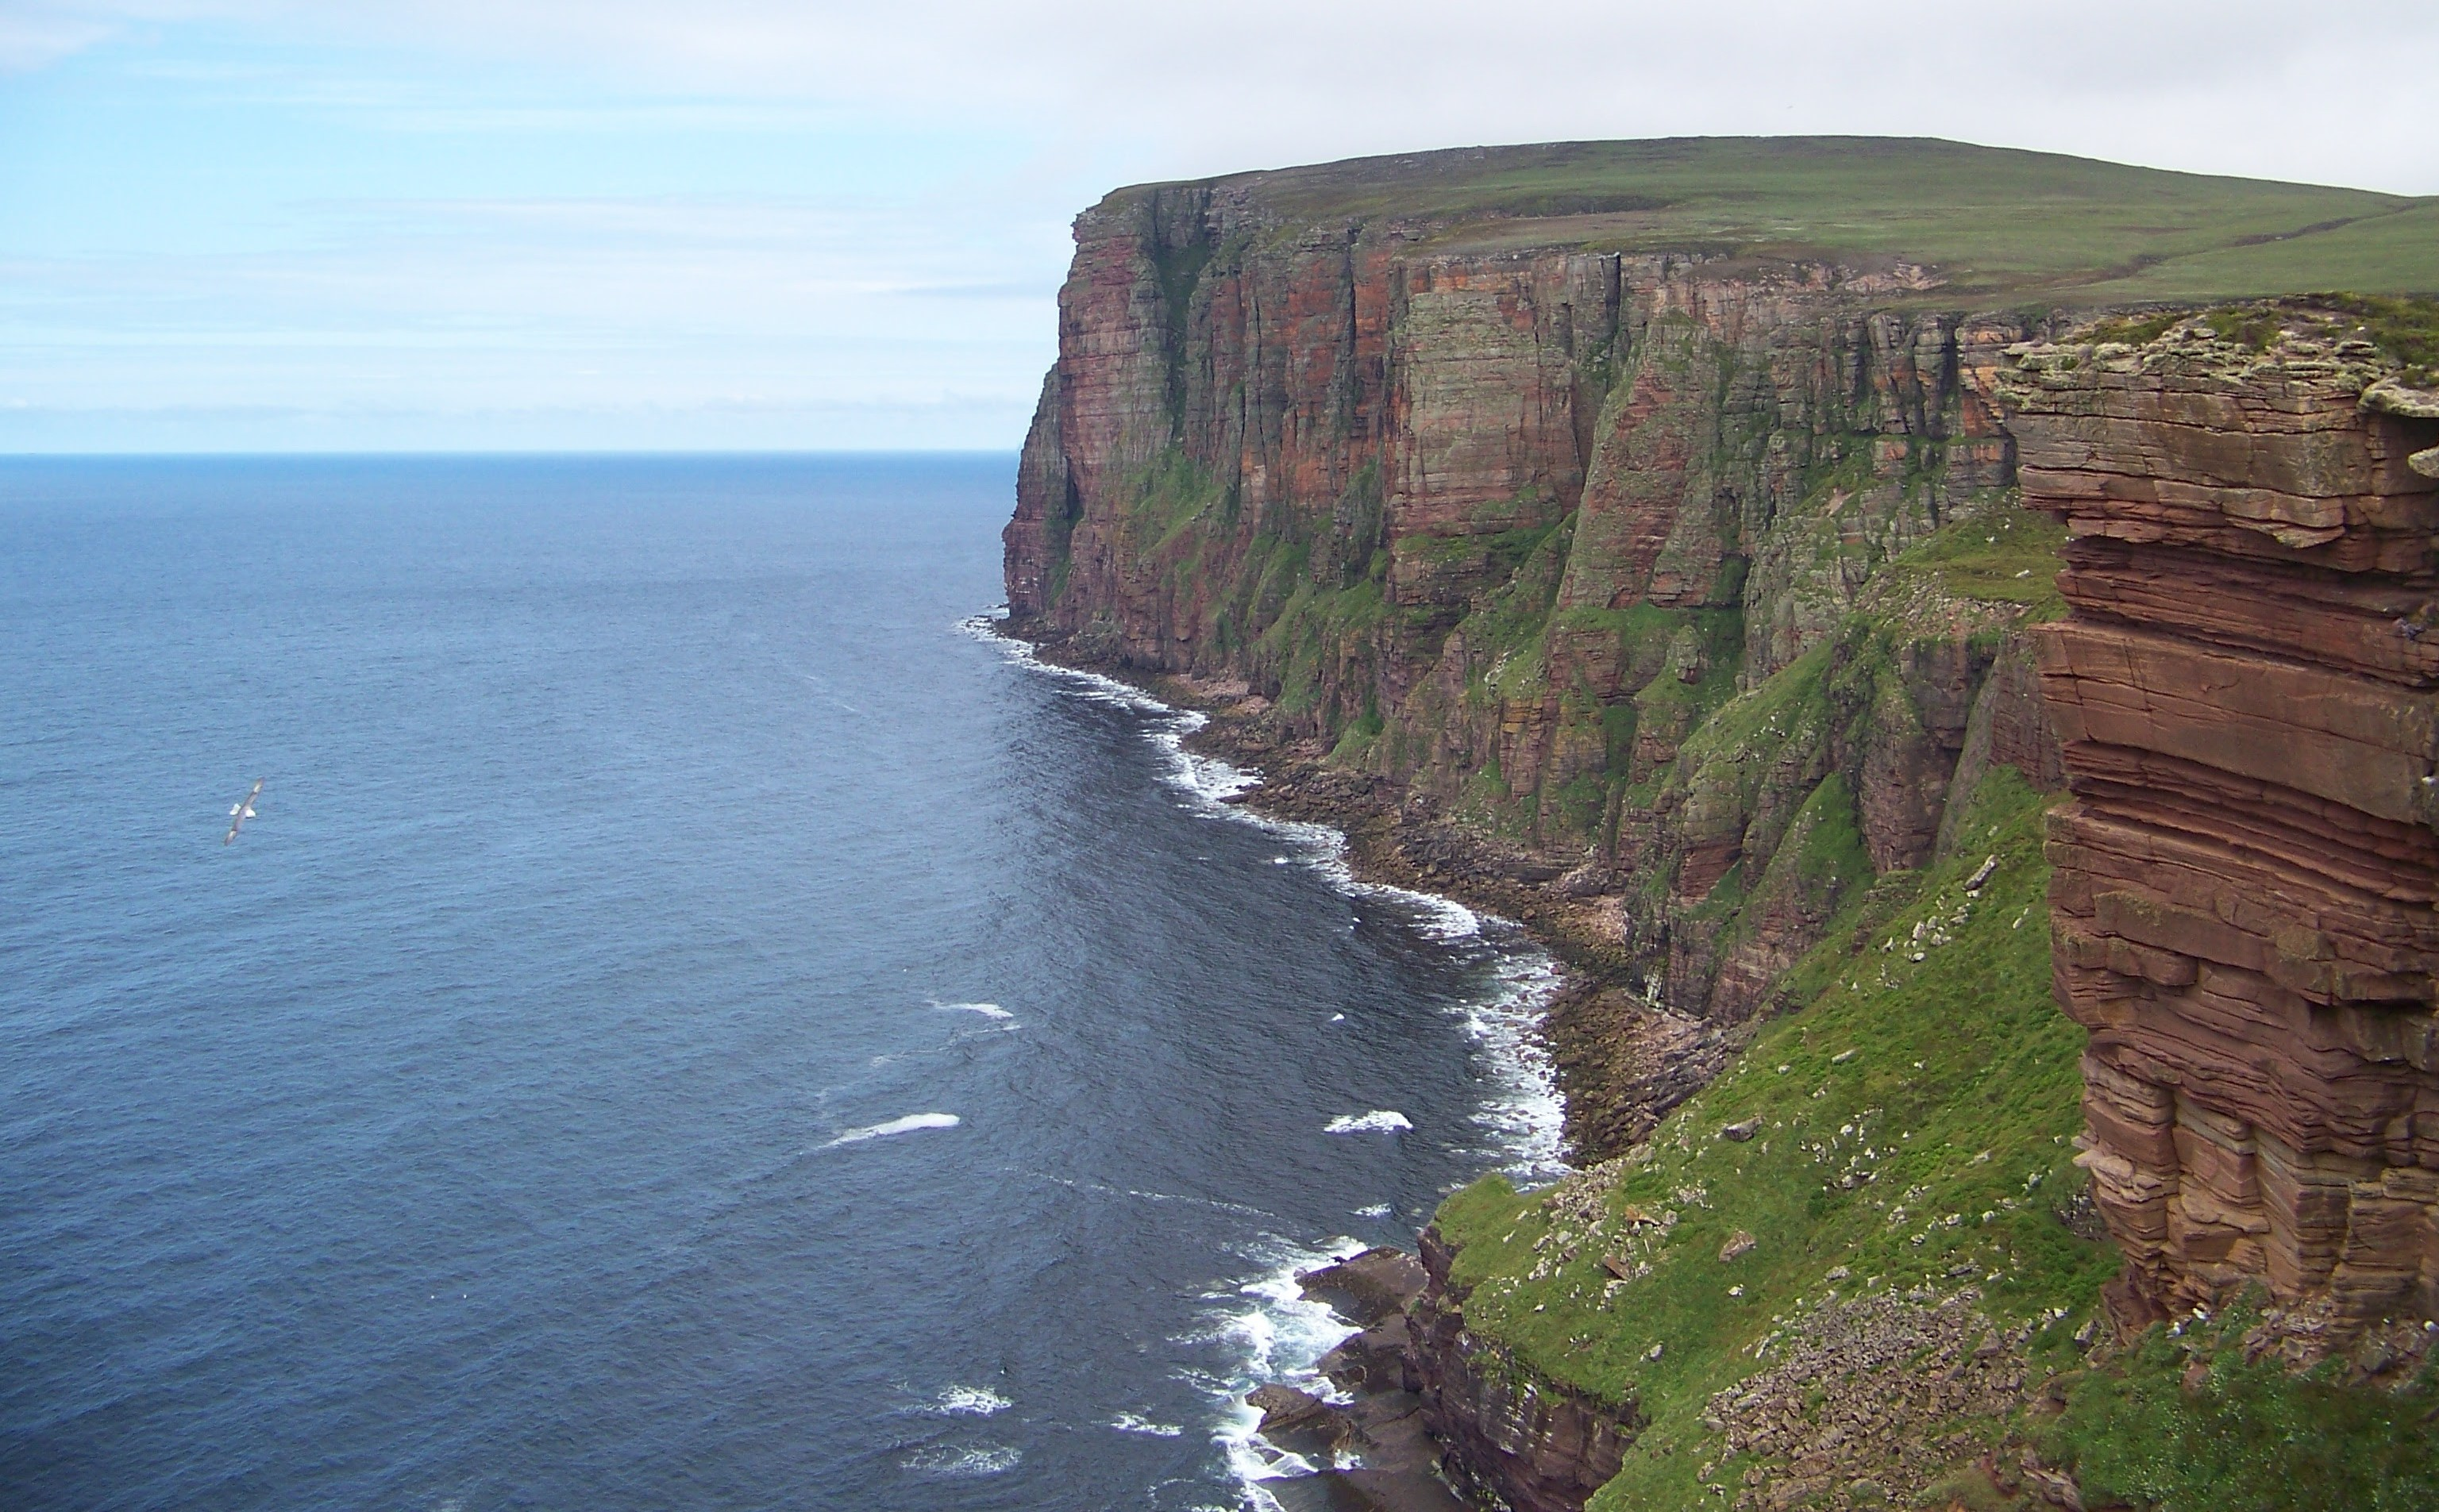 St. John's Head, Hoy, Orkney - the highest vertical sea cliff in Britain.